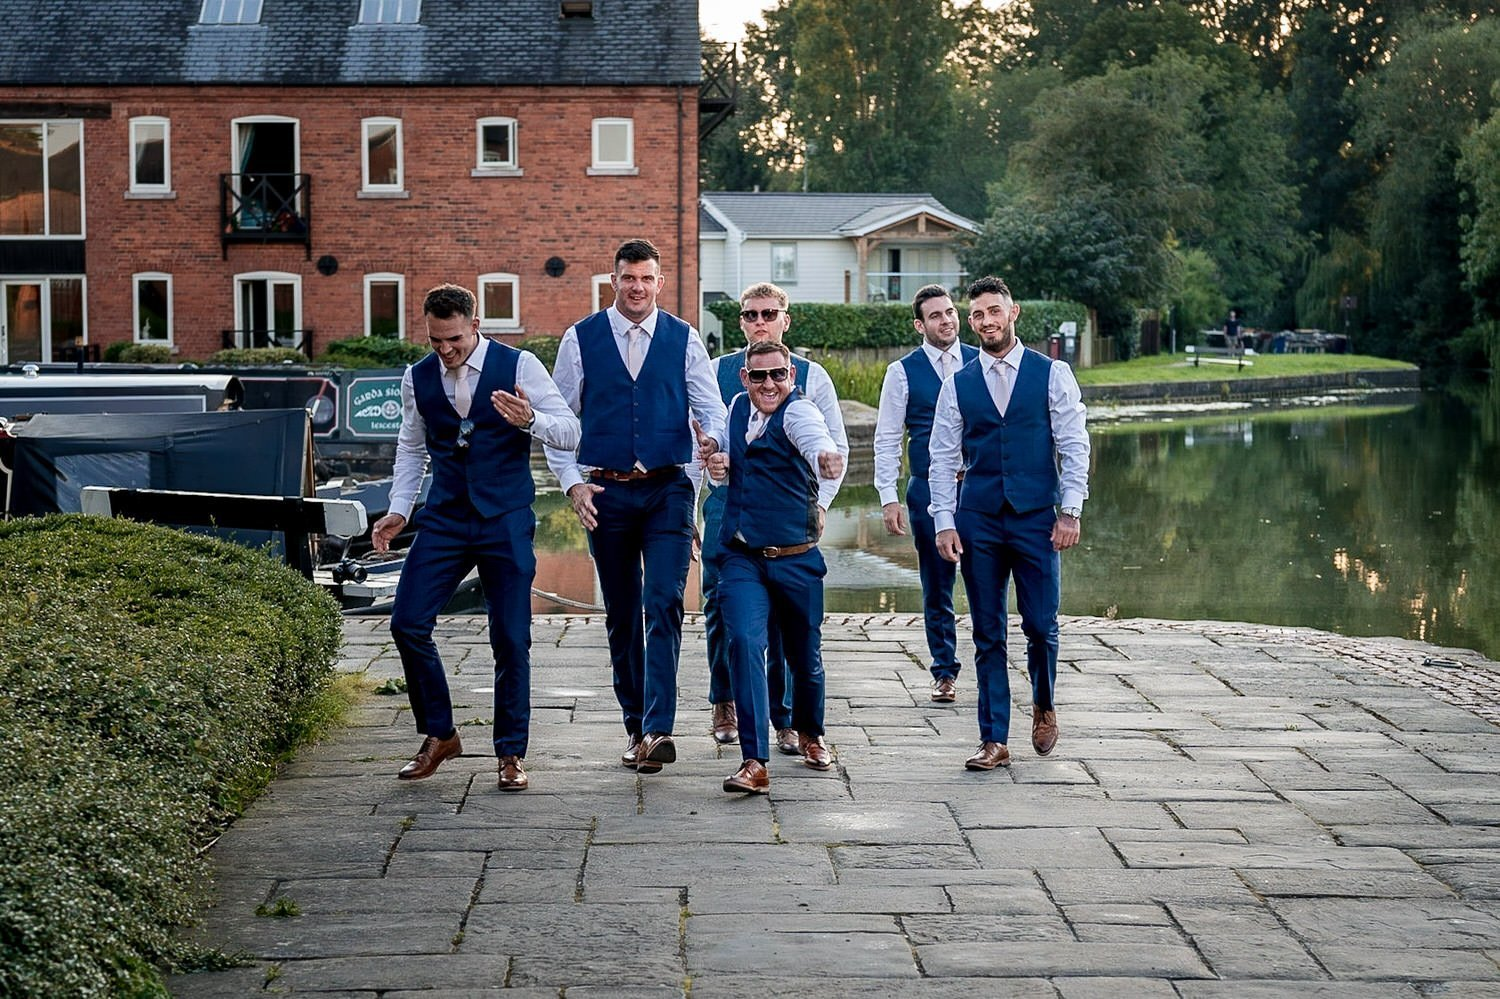 The Waterfront Market Harborough Weddings Photography groom walking along the tow path with his ushers doing stupid dancing silly walks